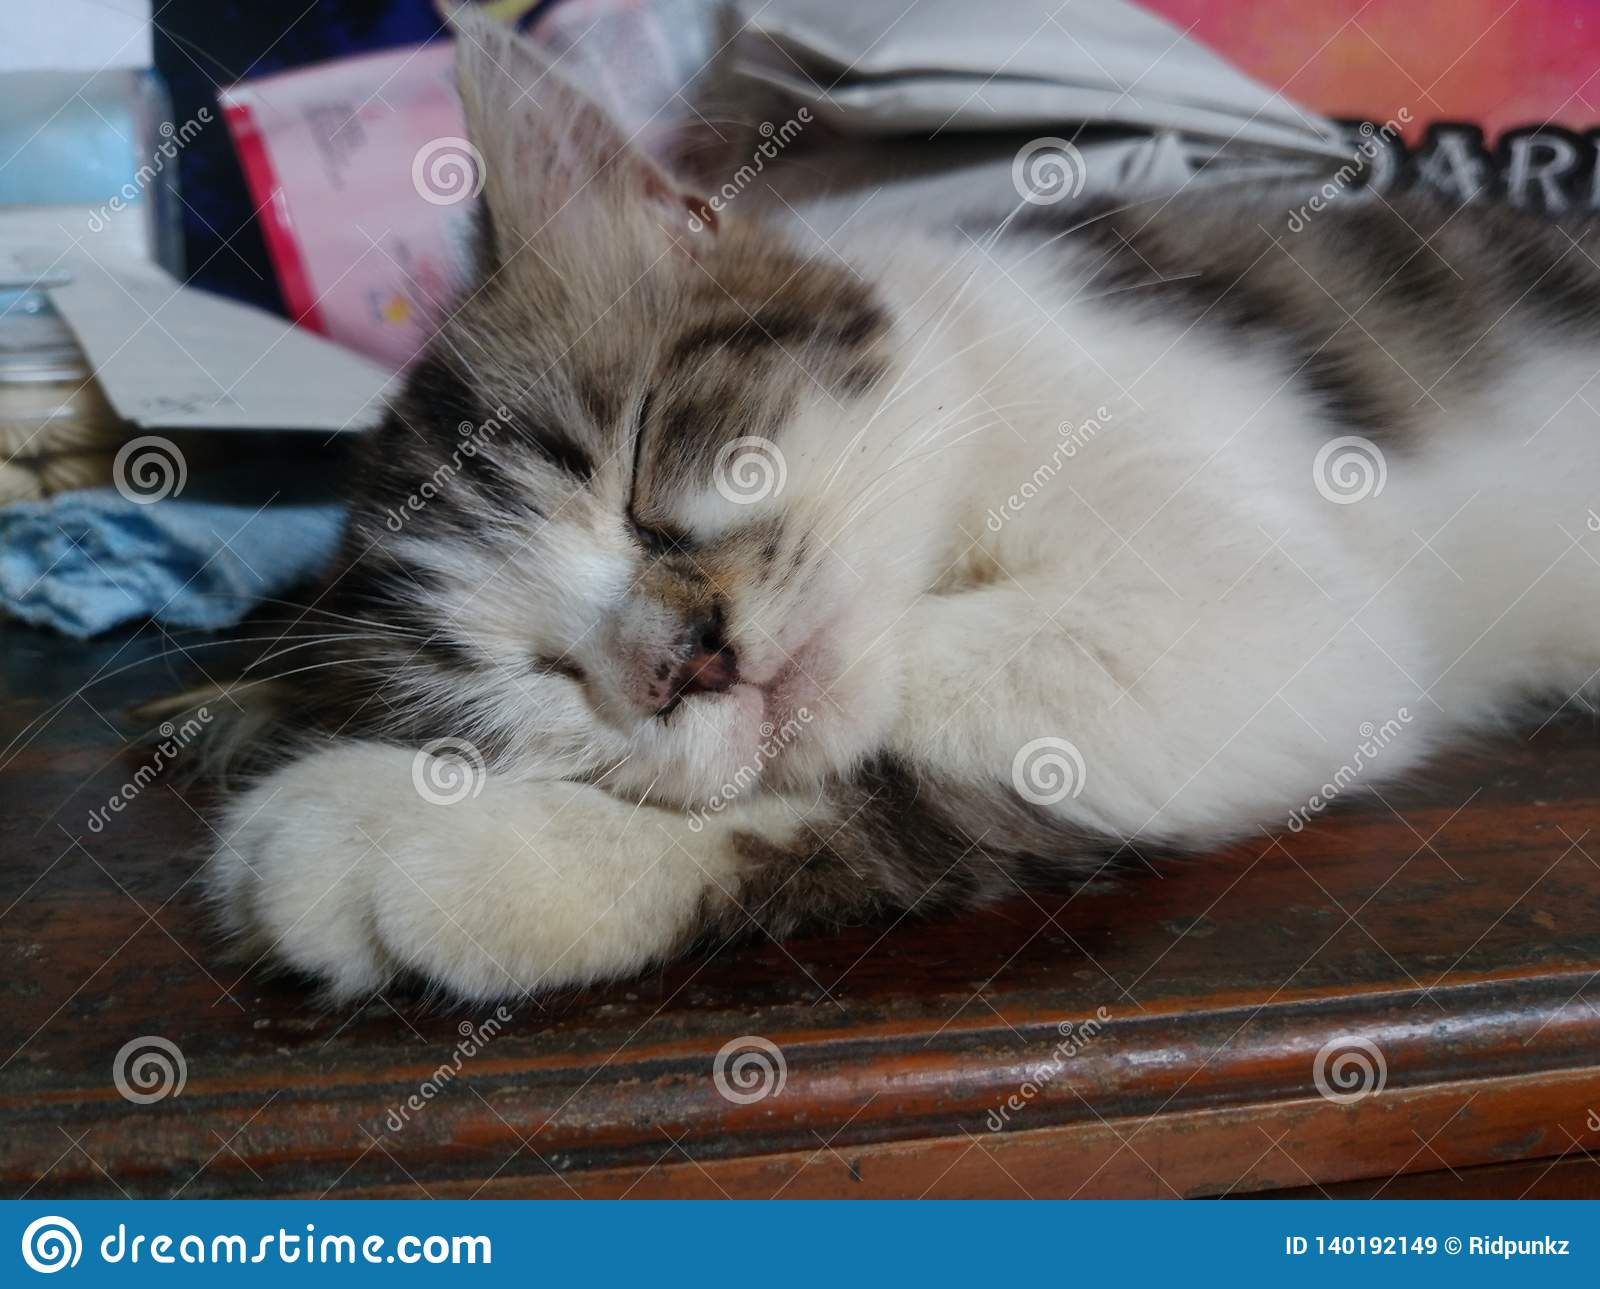 black and white kitten sleeping on the wooden table